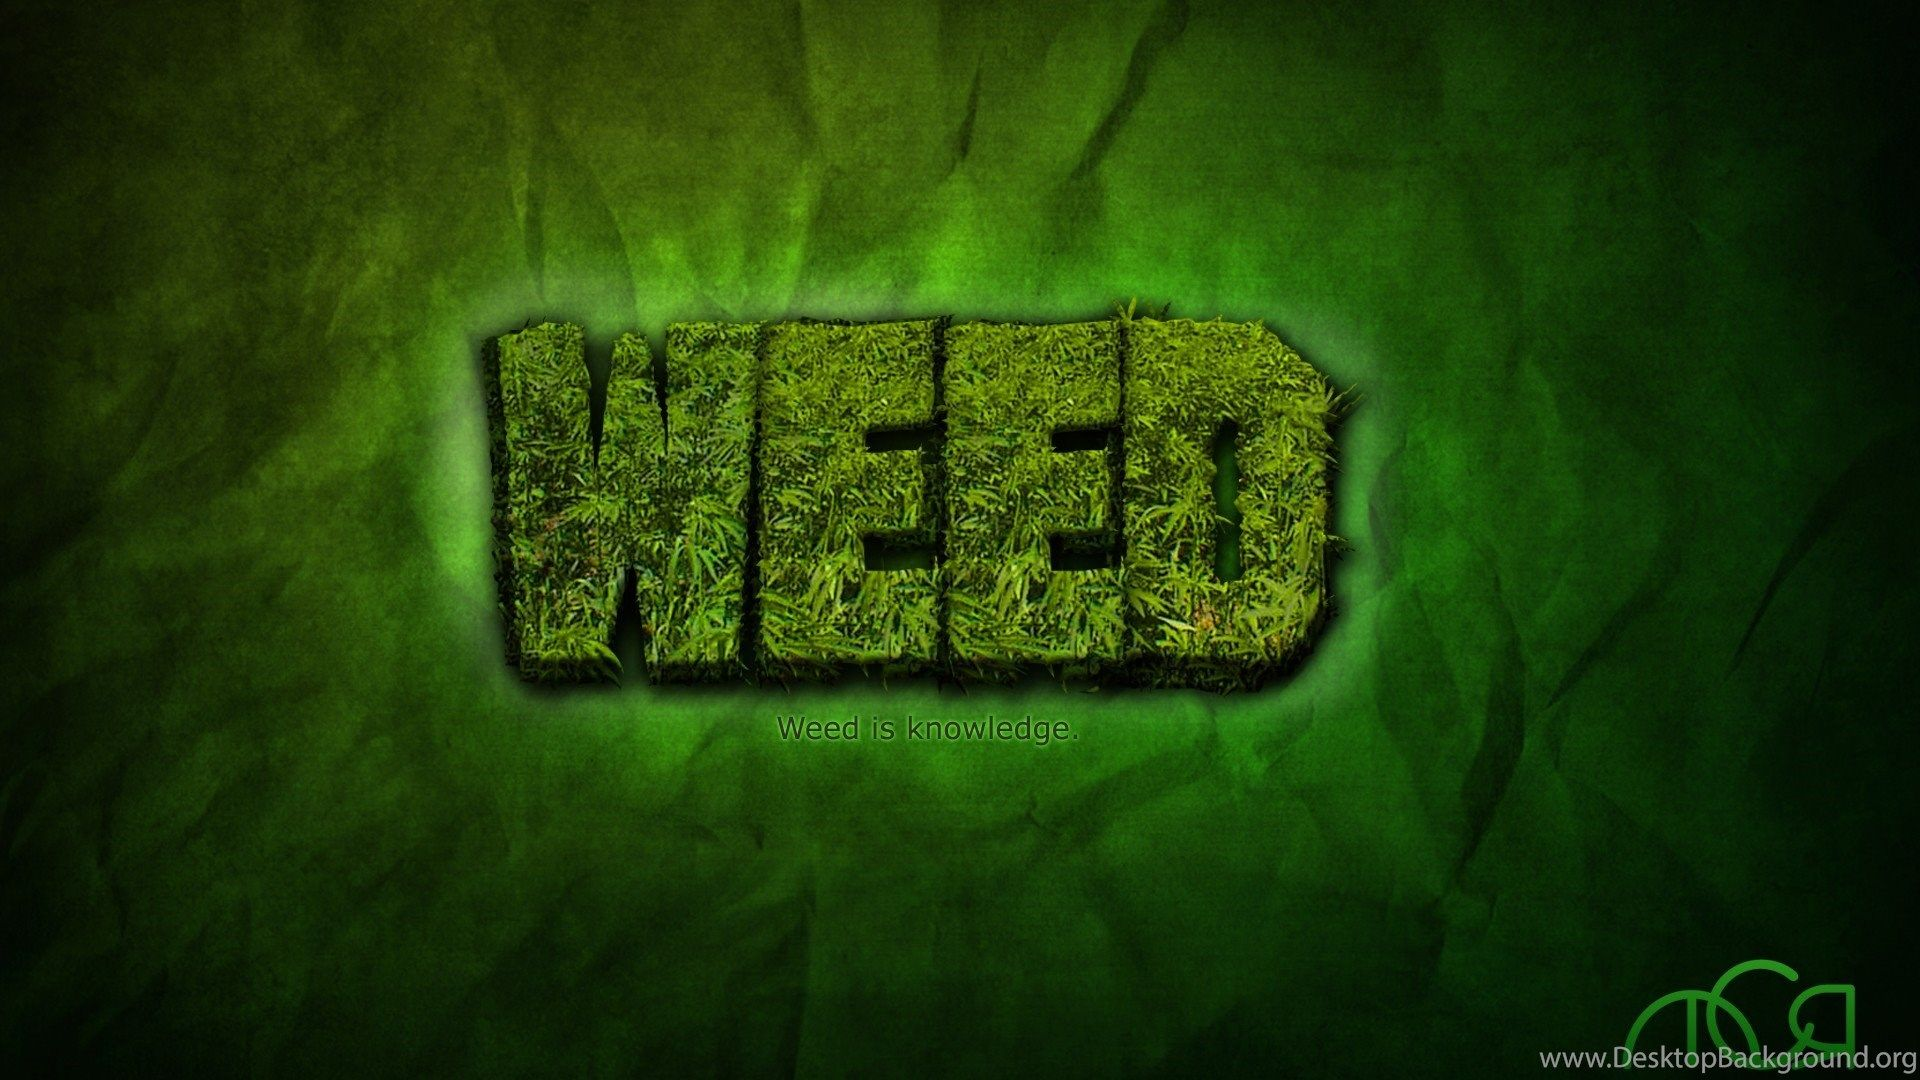 Hd Weed Widescreen 1080p Wallpapers Top Free Hd Weed Widescreen